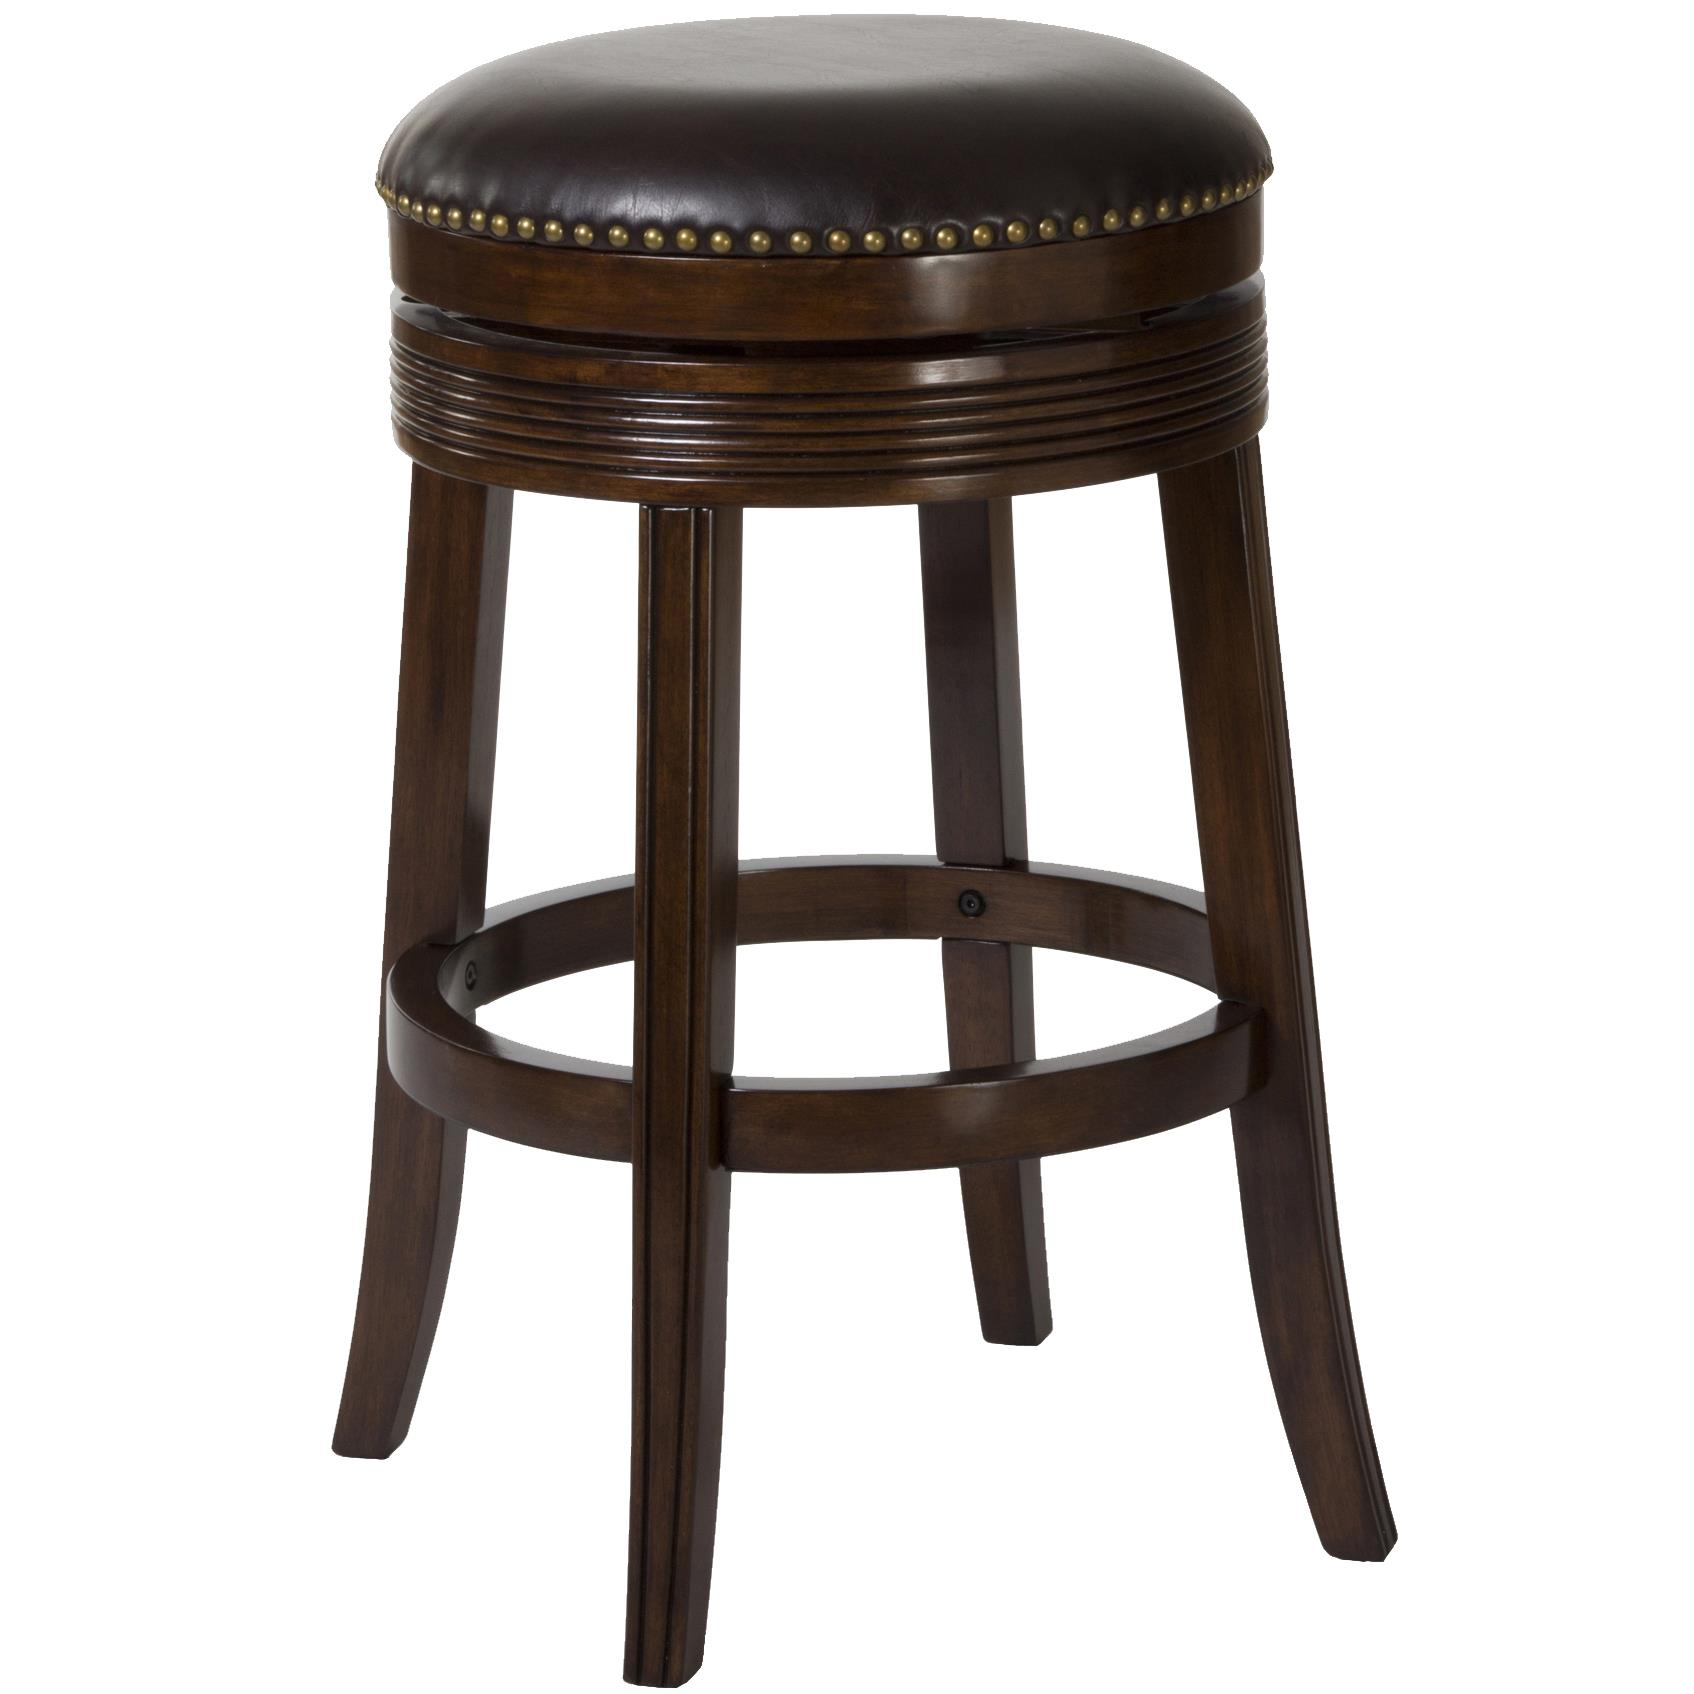 Hillsdale Backless Bar Stools 26quot Tillman Backless Swivel  : products2Fhillsdale2Fcolor2Fbackless20bar20stools5220 826 b0 from www.wayside-furniture.com size 1694 x 1694 jpeg 128kB